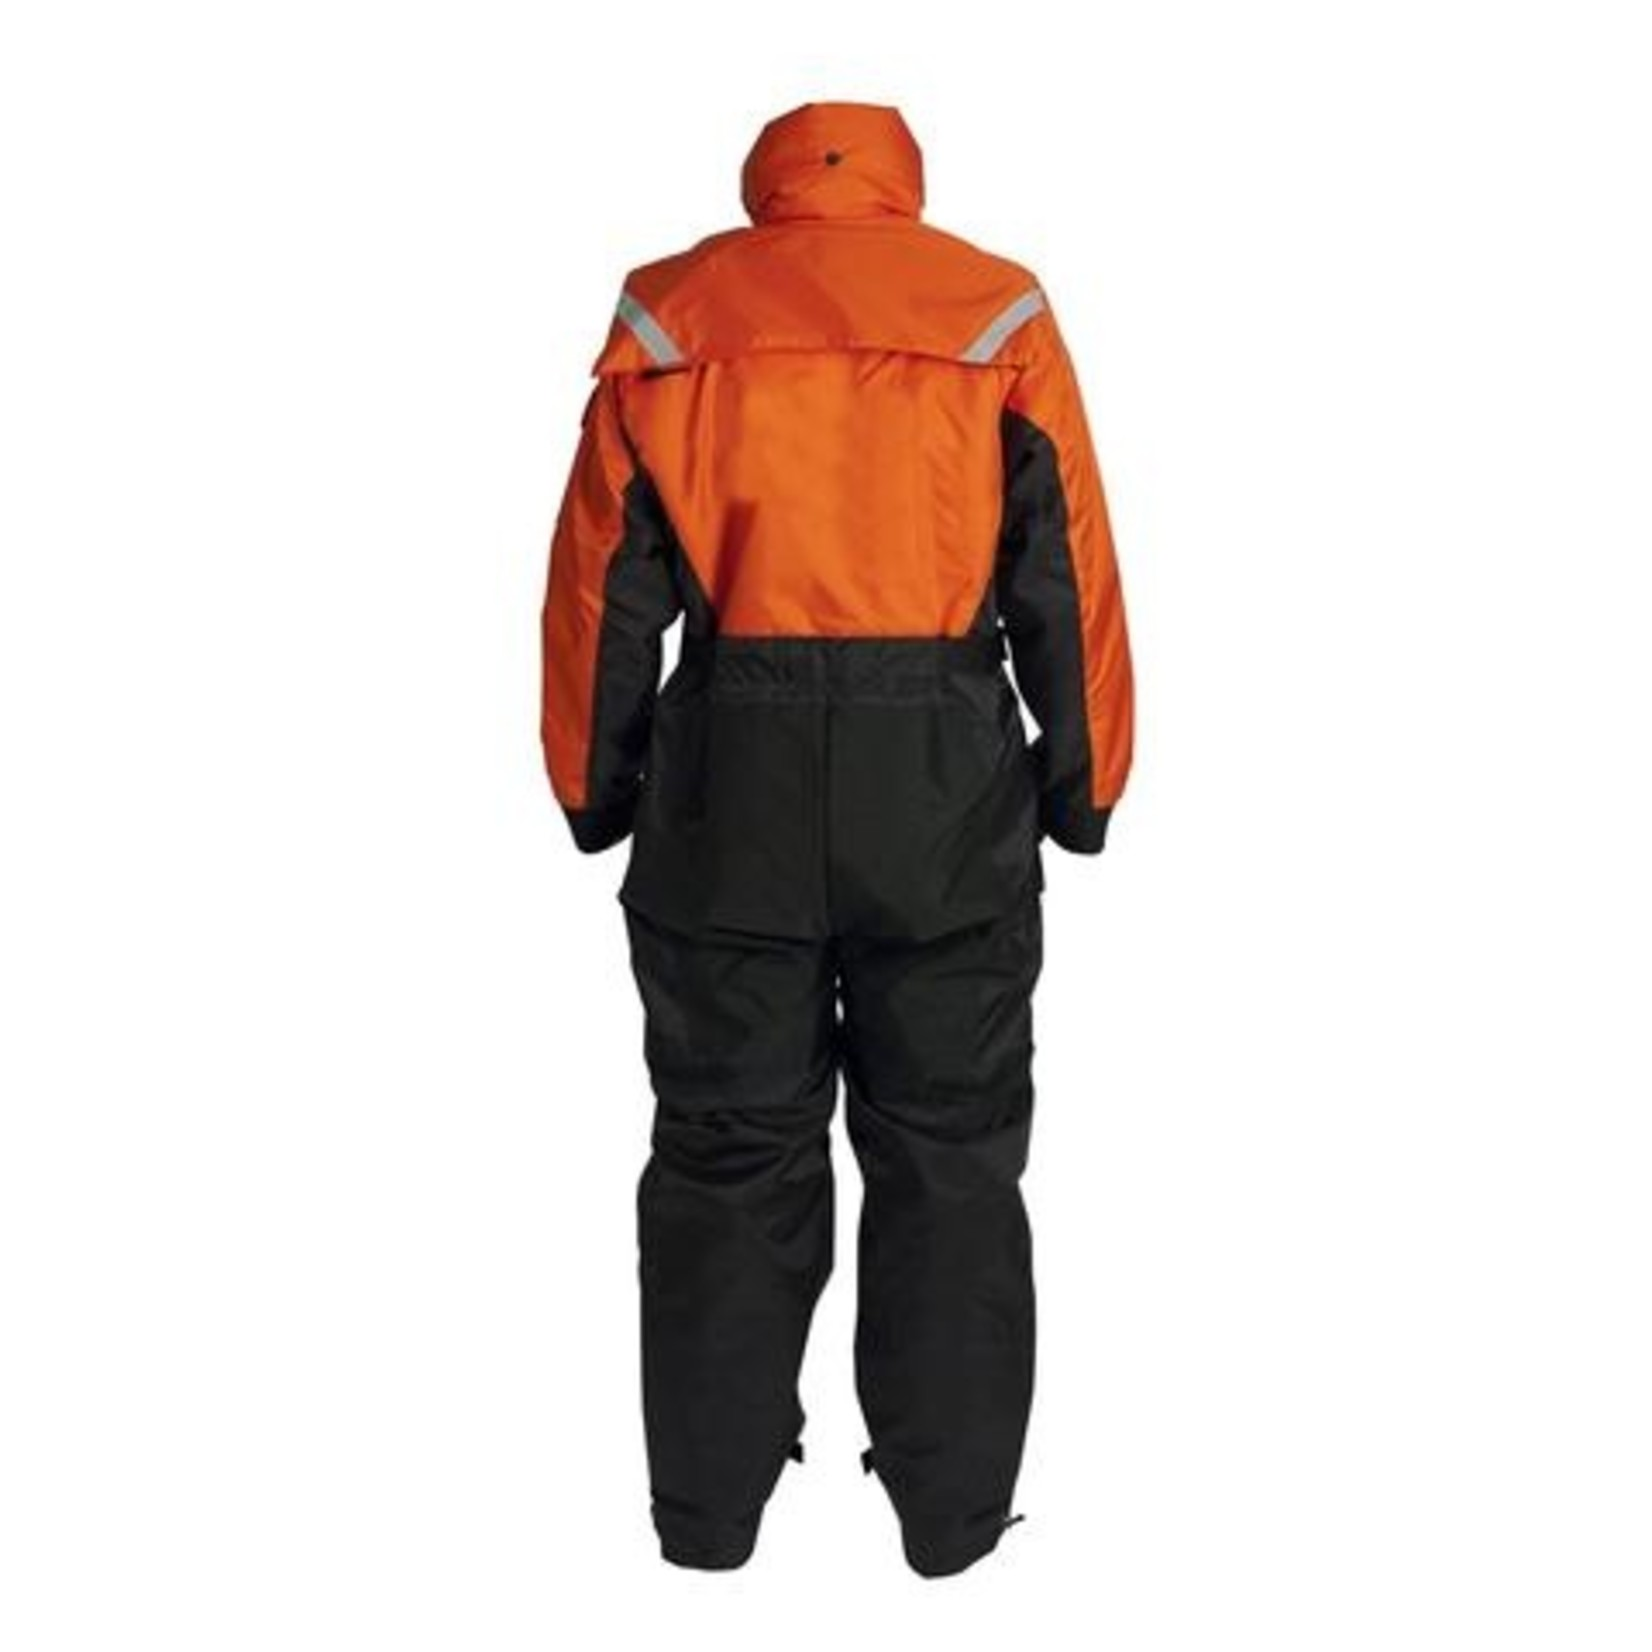 Mustang Survival Mustang Survival Deluxe Anti-Exposure Coverall And Worksuit